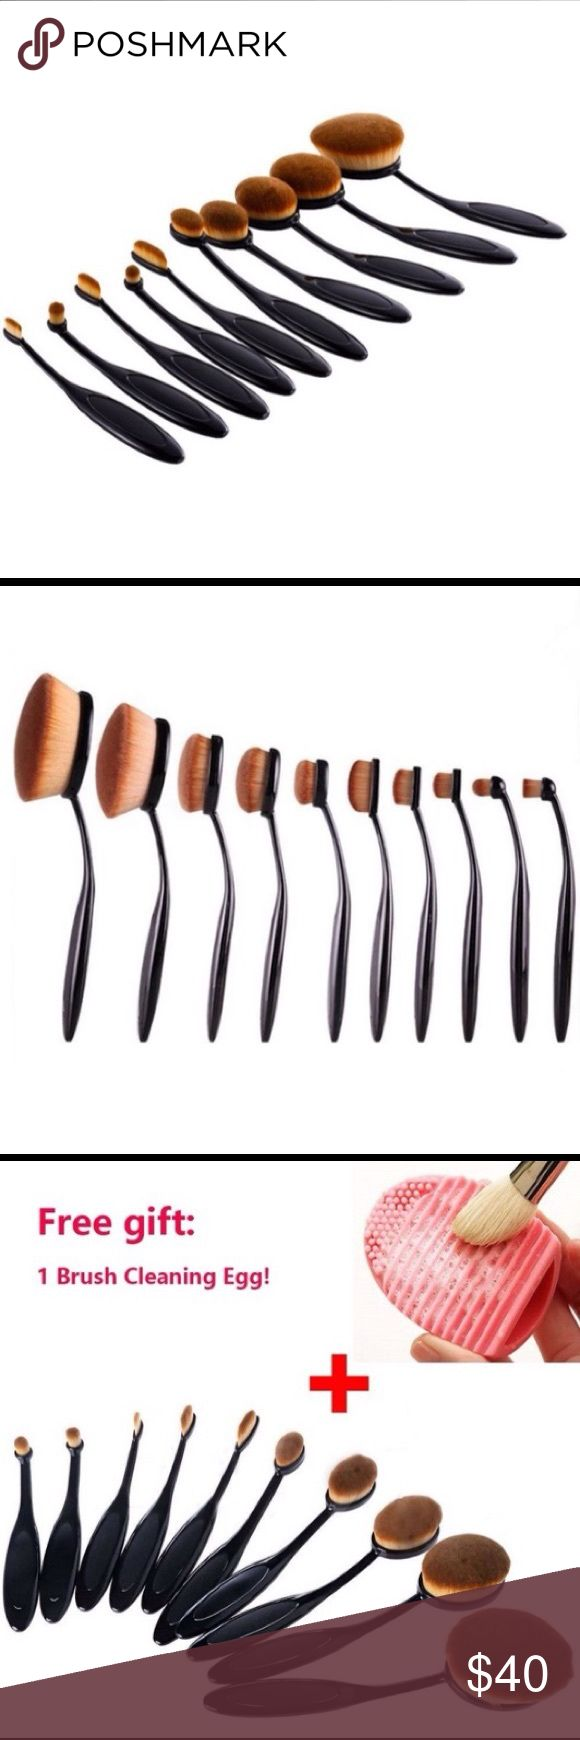 🆕 10 pc makeup brush set. 10pc toothbrush style makeup brush set with free brush cleaner. Super soft bristles and comfortable black grip handles. Accessories